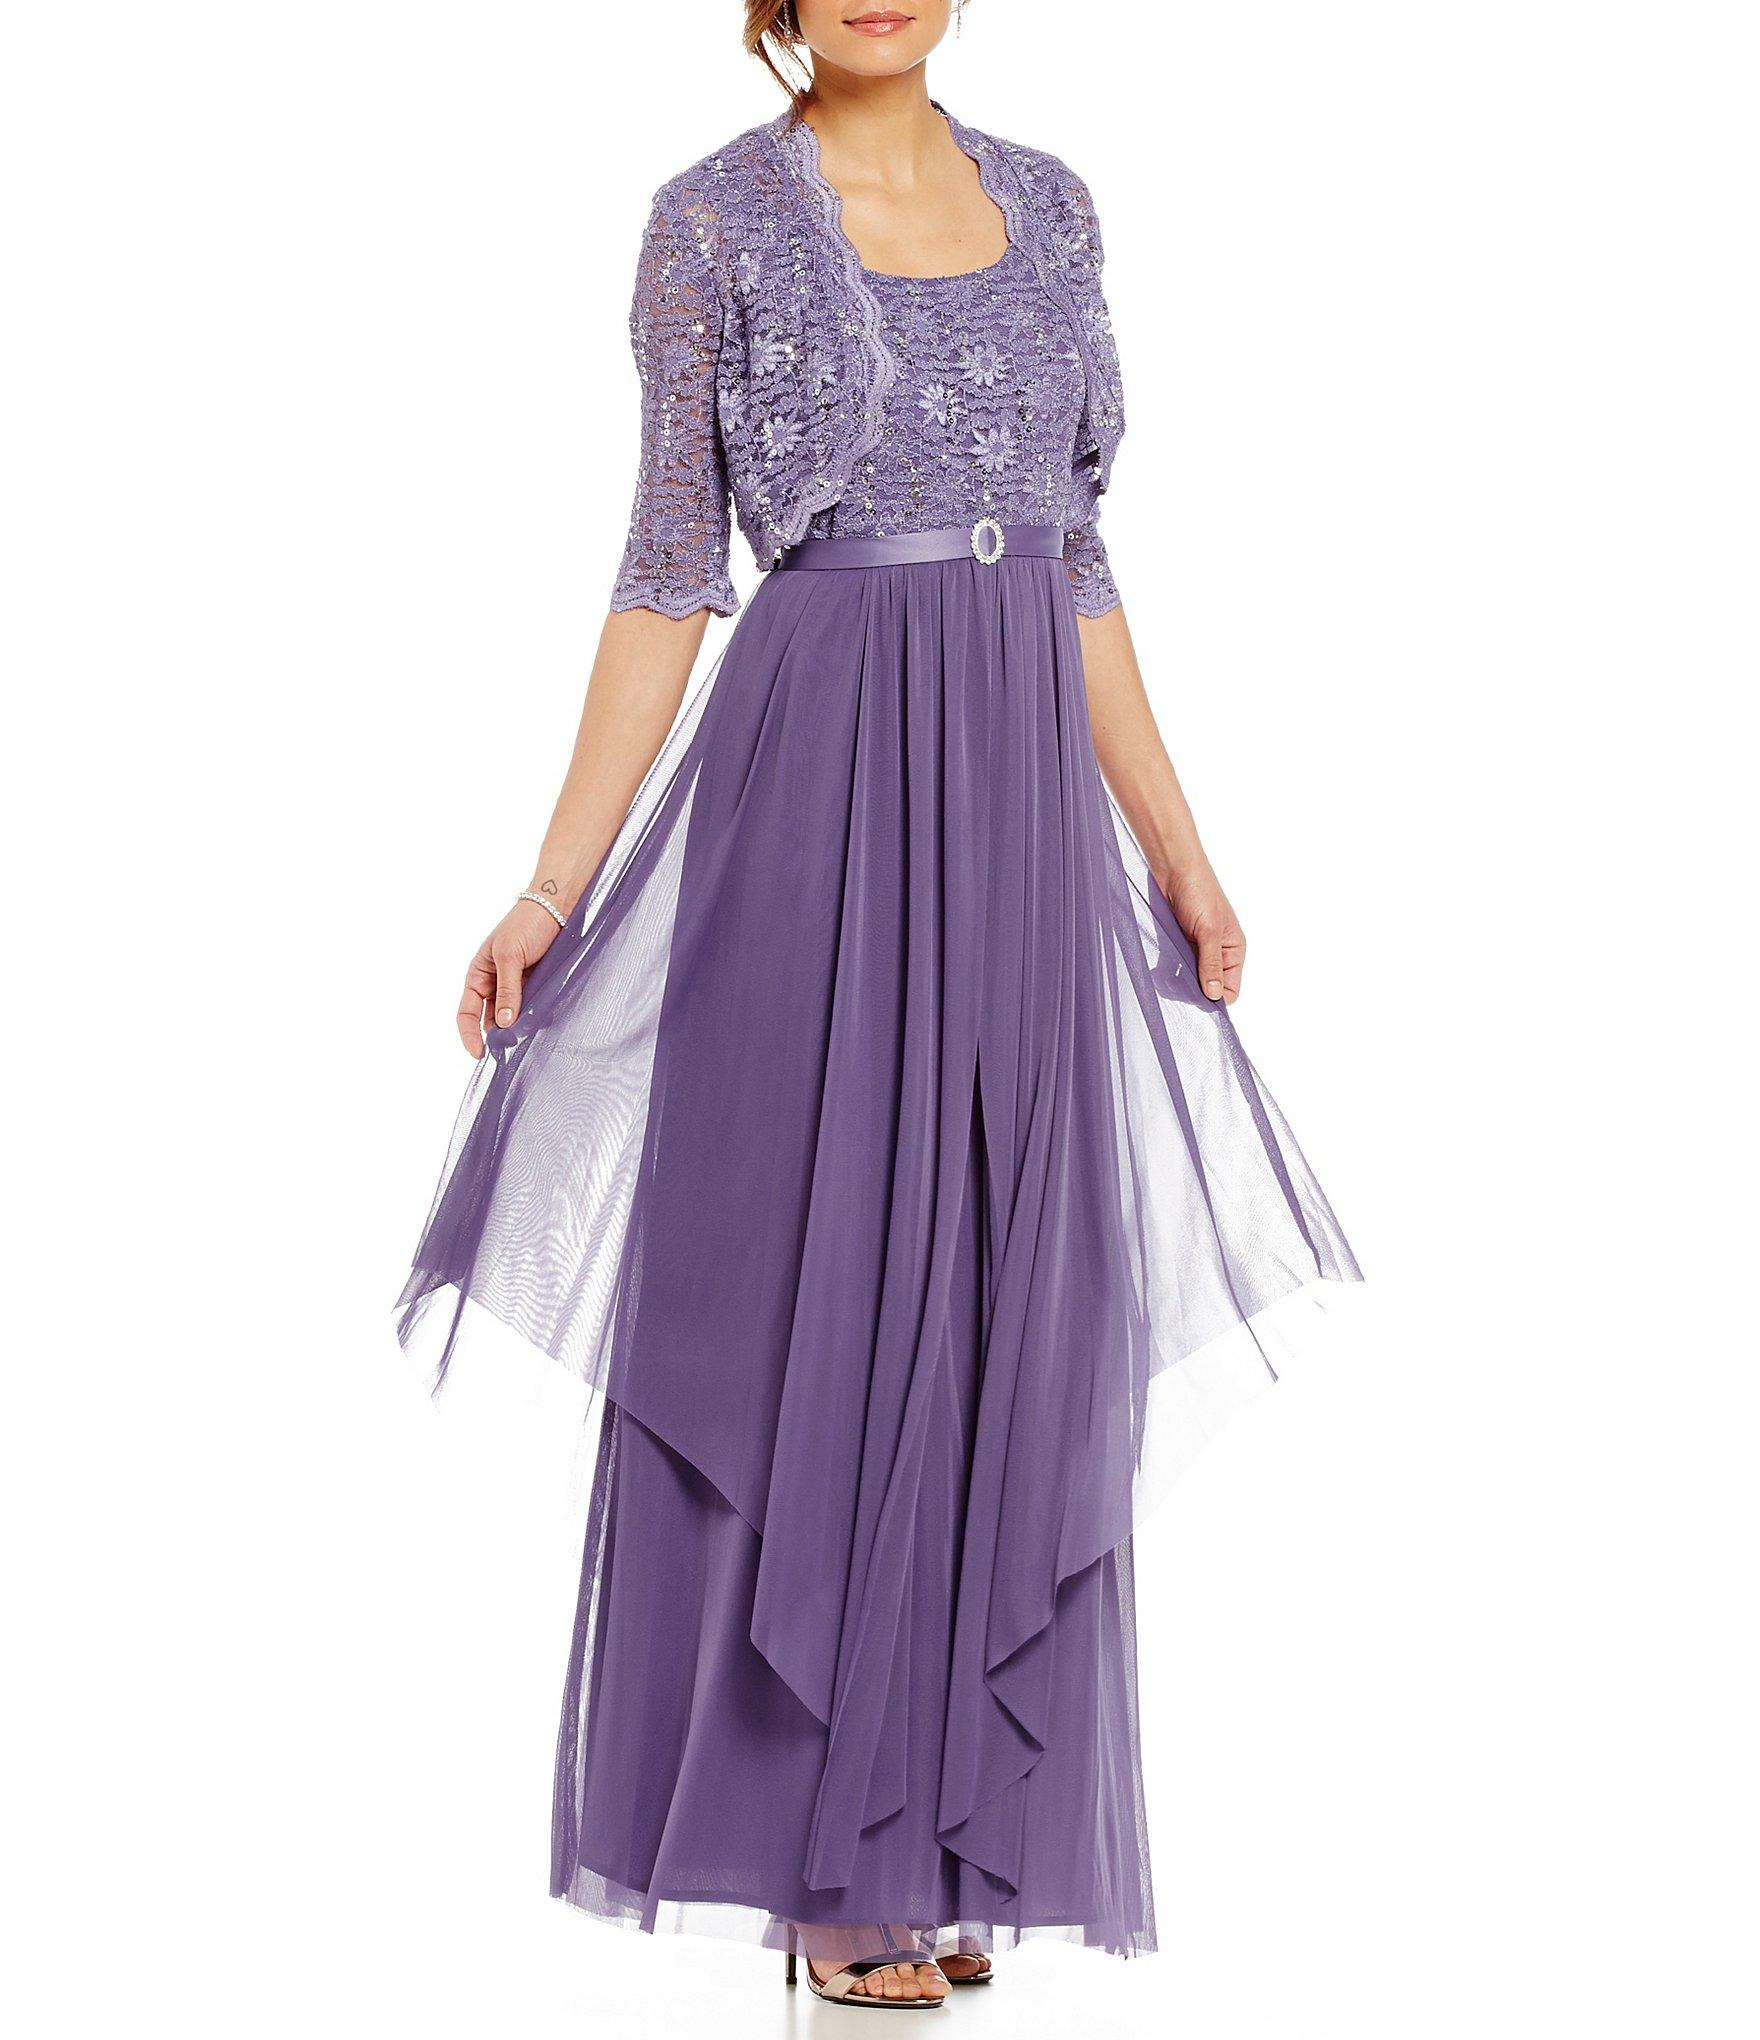 cde8877cbeb Lyst - R   M Richards Sequined Lace   Chiffon Jacket Dress in Purple